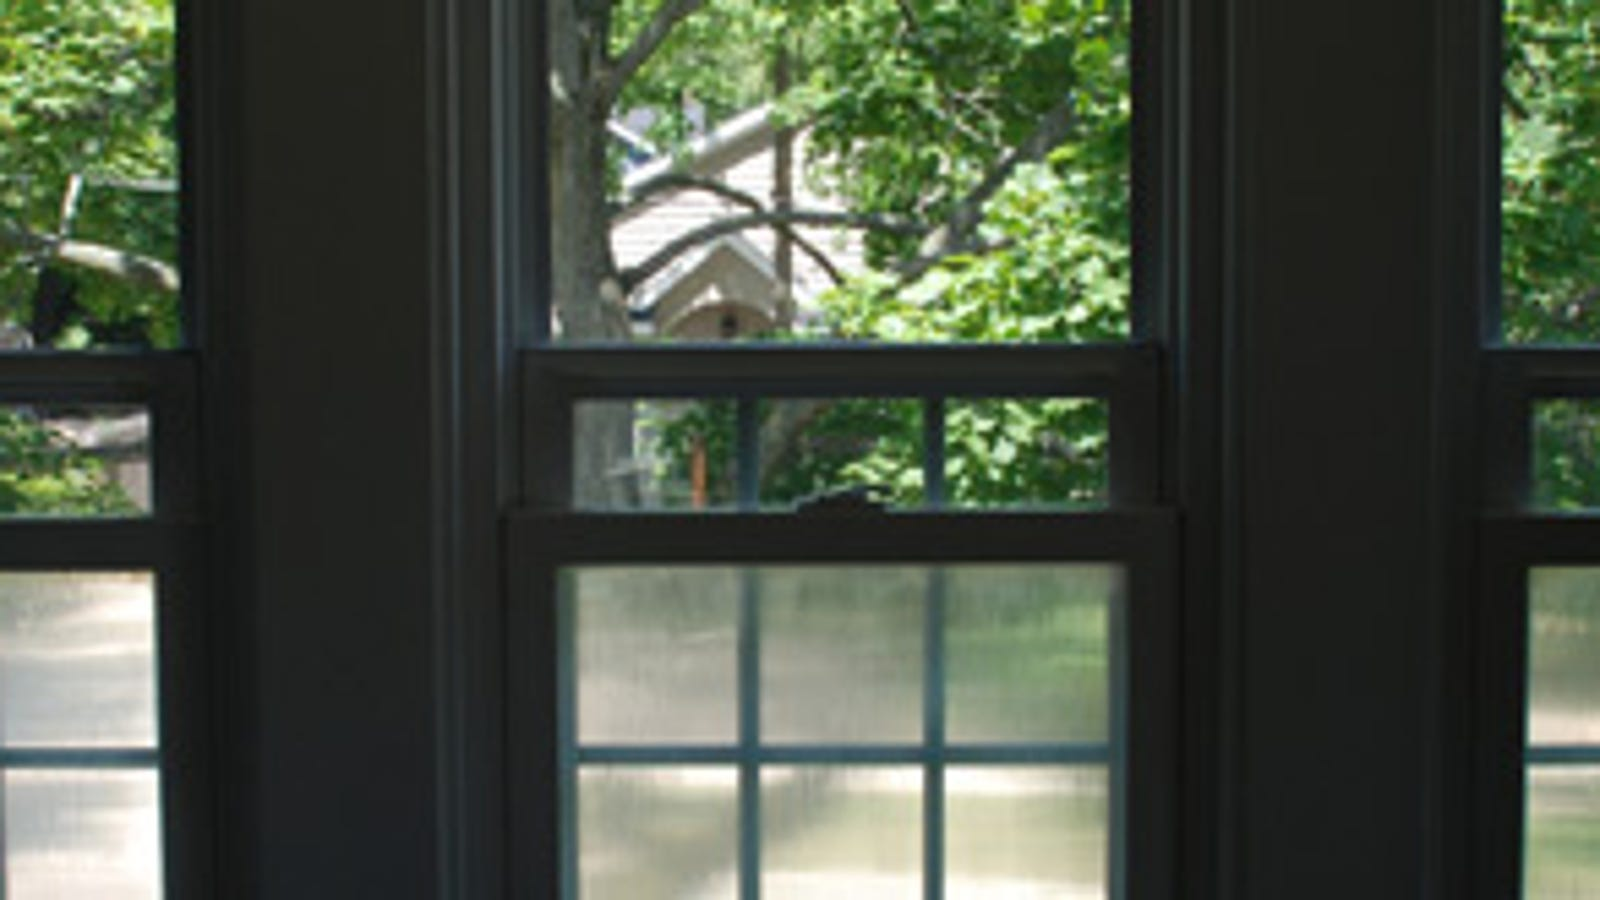 Increase Your Privacy With 16 Diy Window Frosting